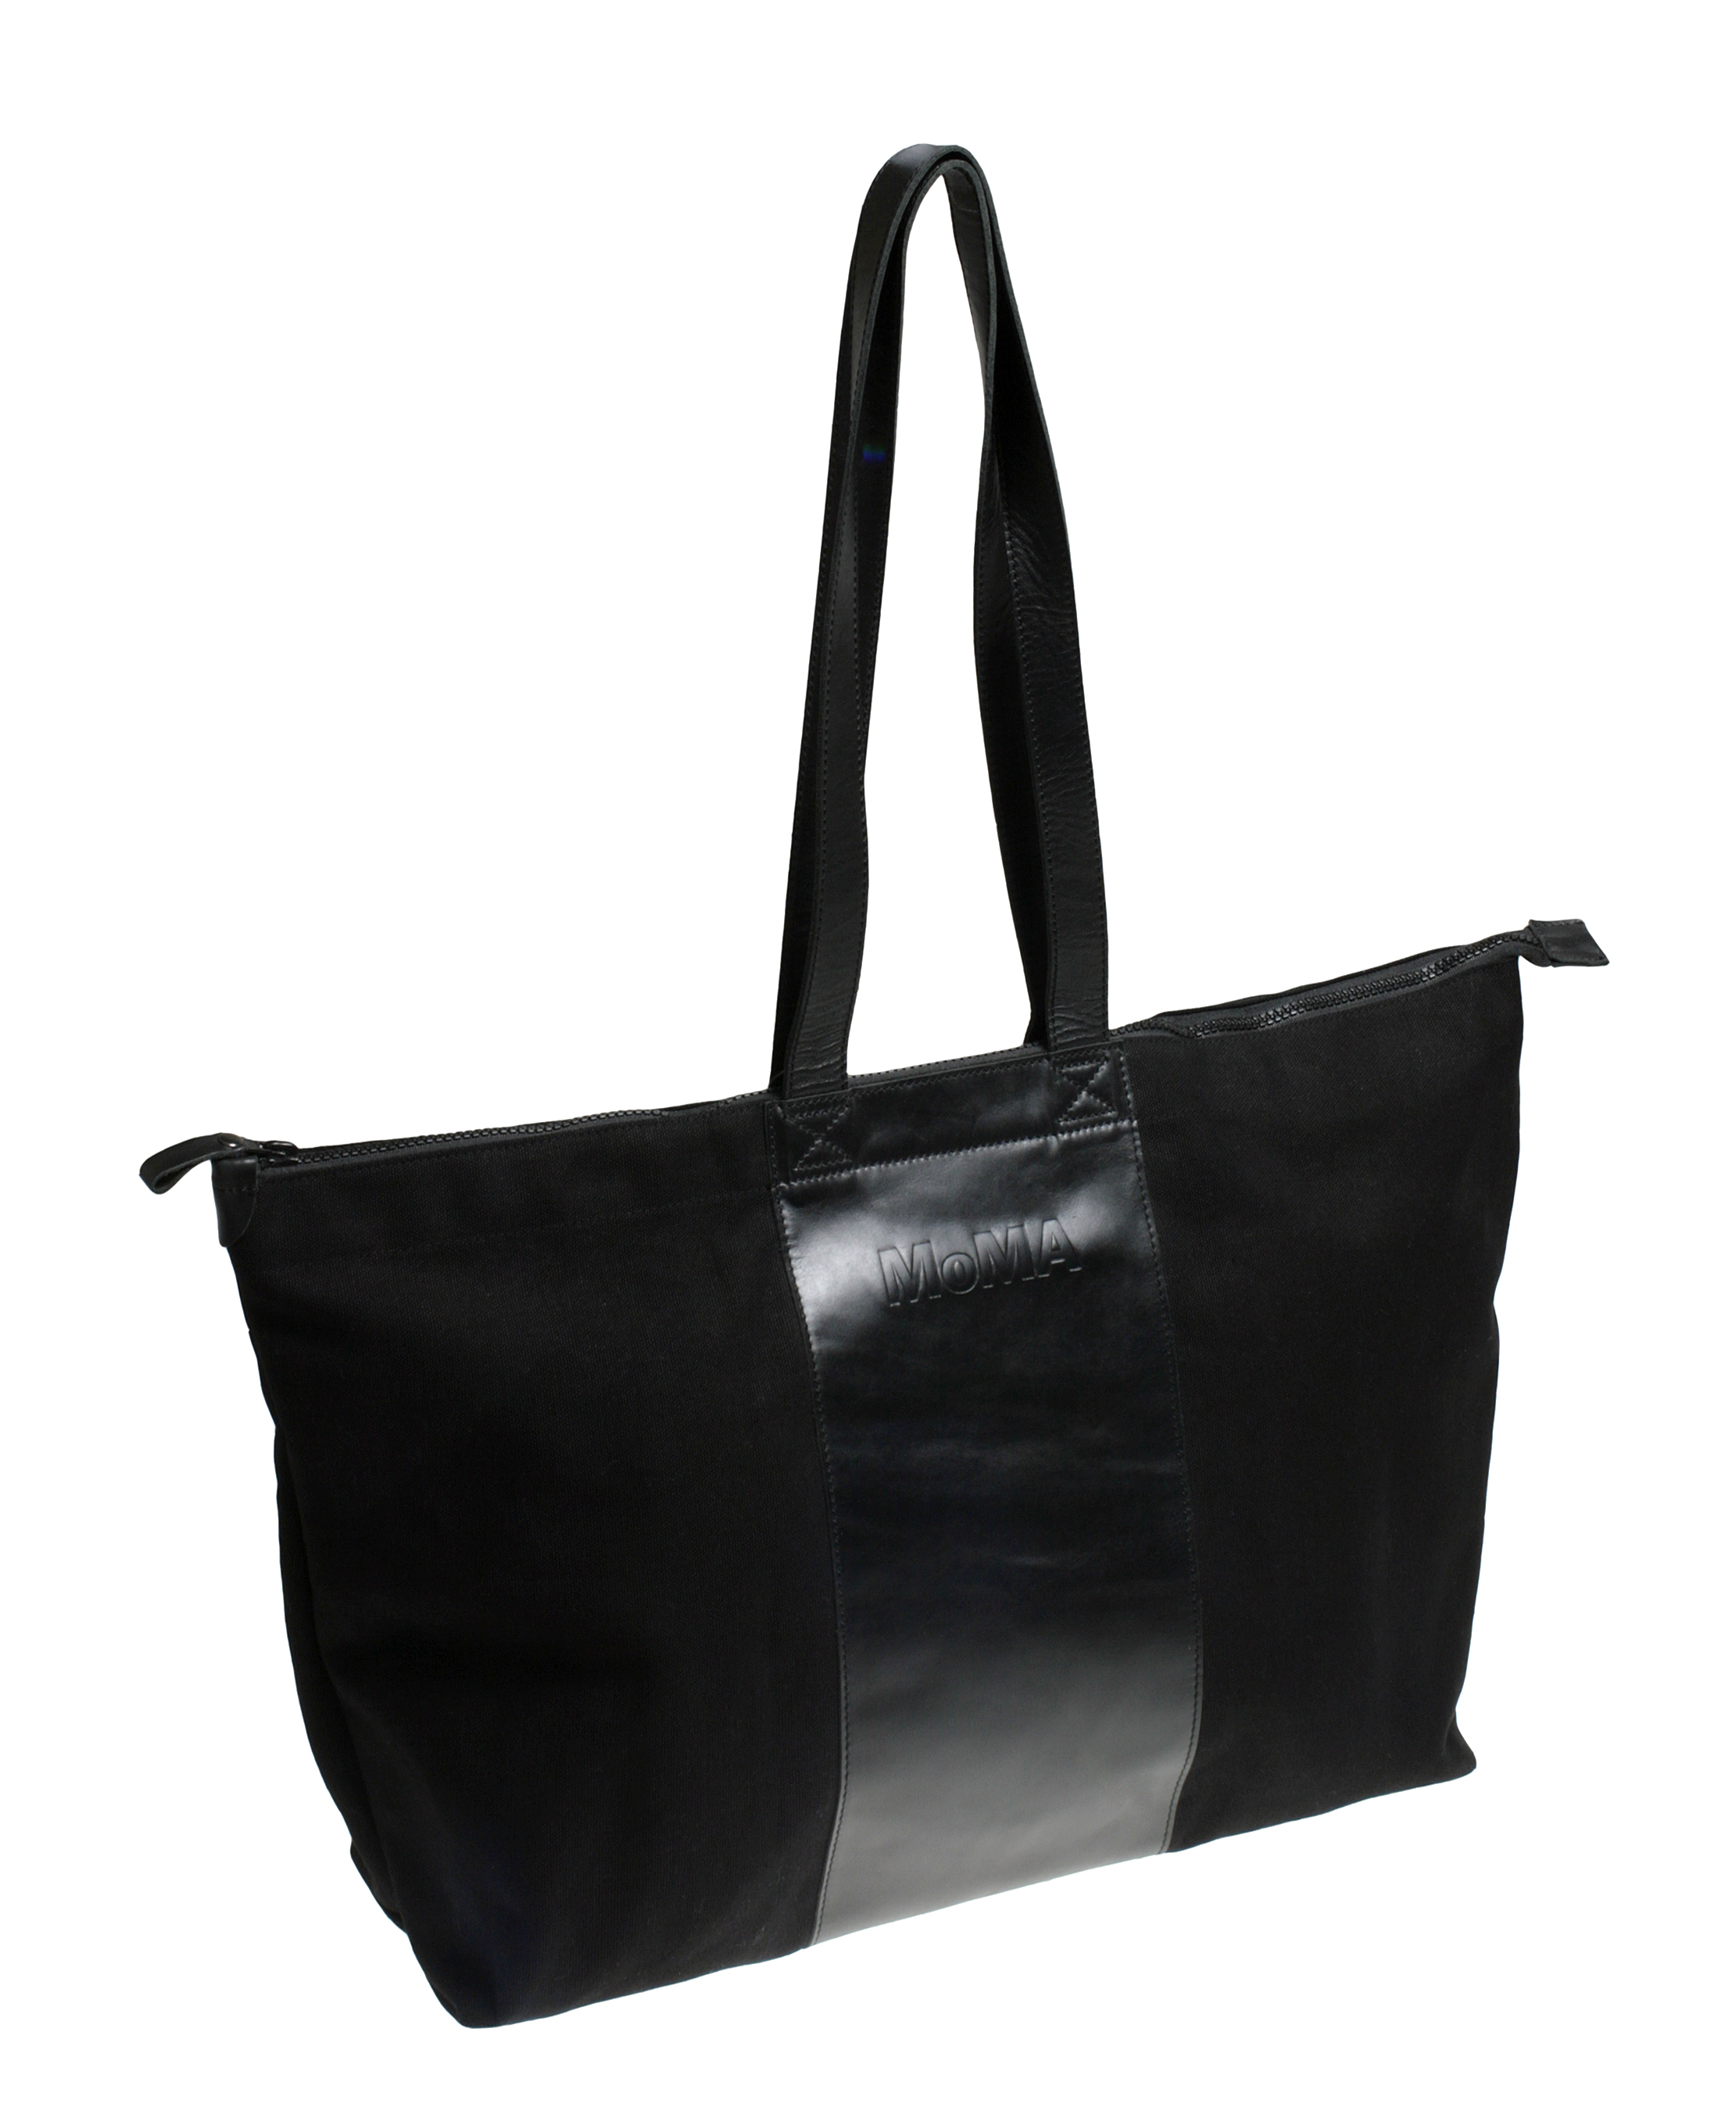 Leather and canvas totes